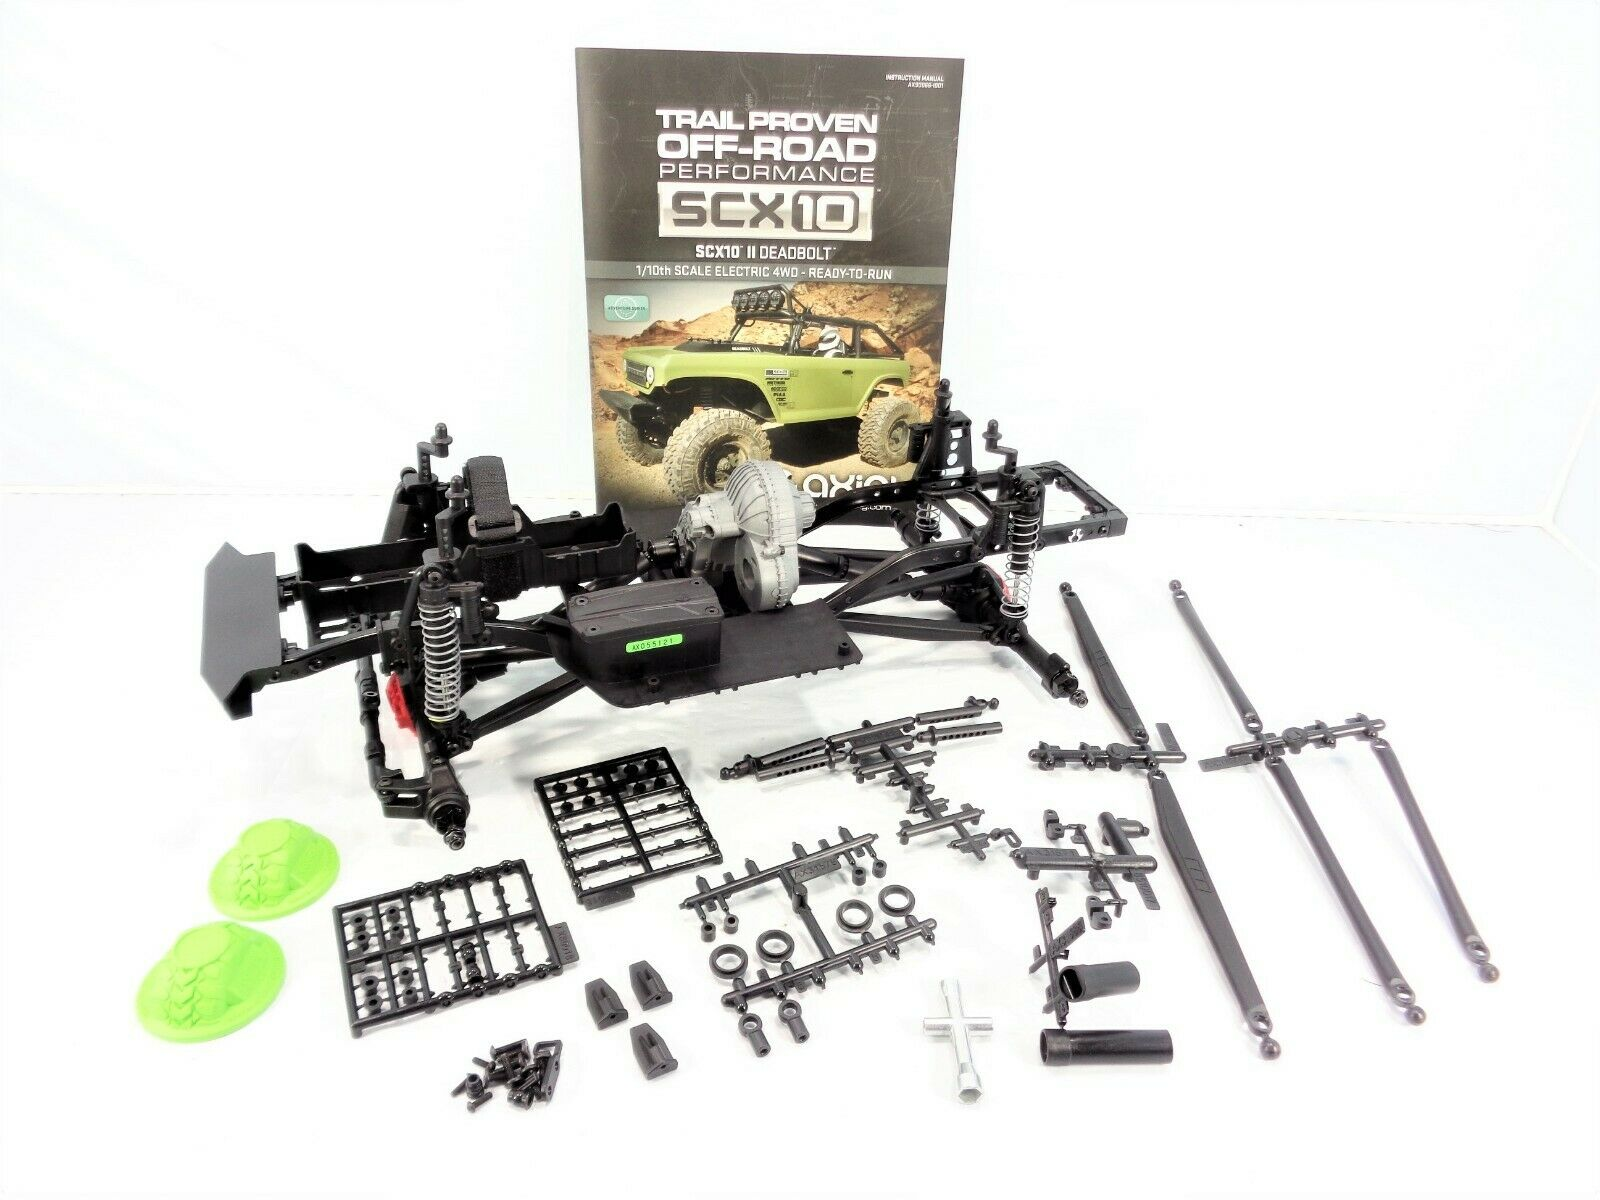 Axial SCX10 II Deadbolt  Crawler Chassis Set Axles Transmission Rolling Slider  negozio all'ingrosso